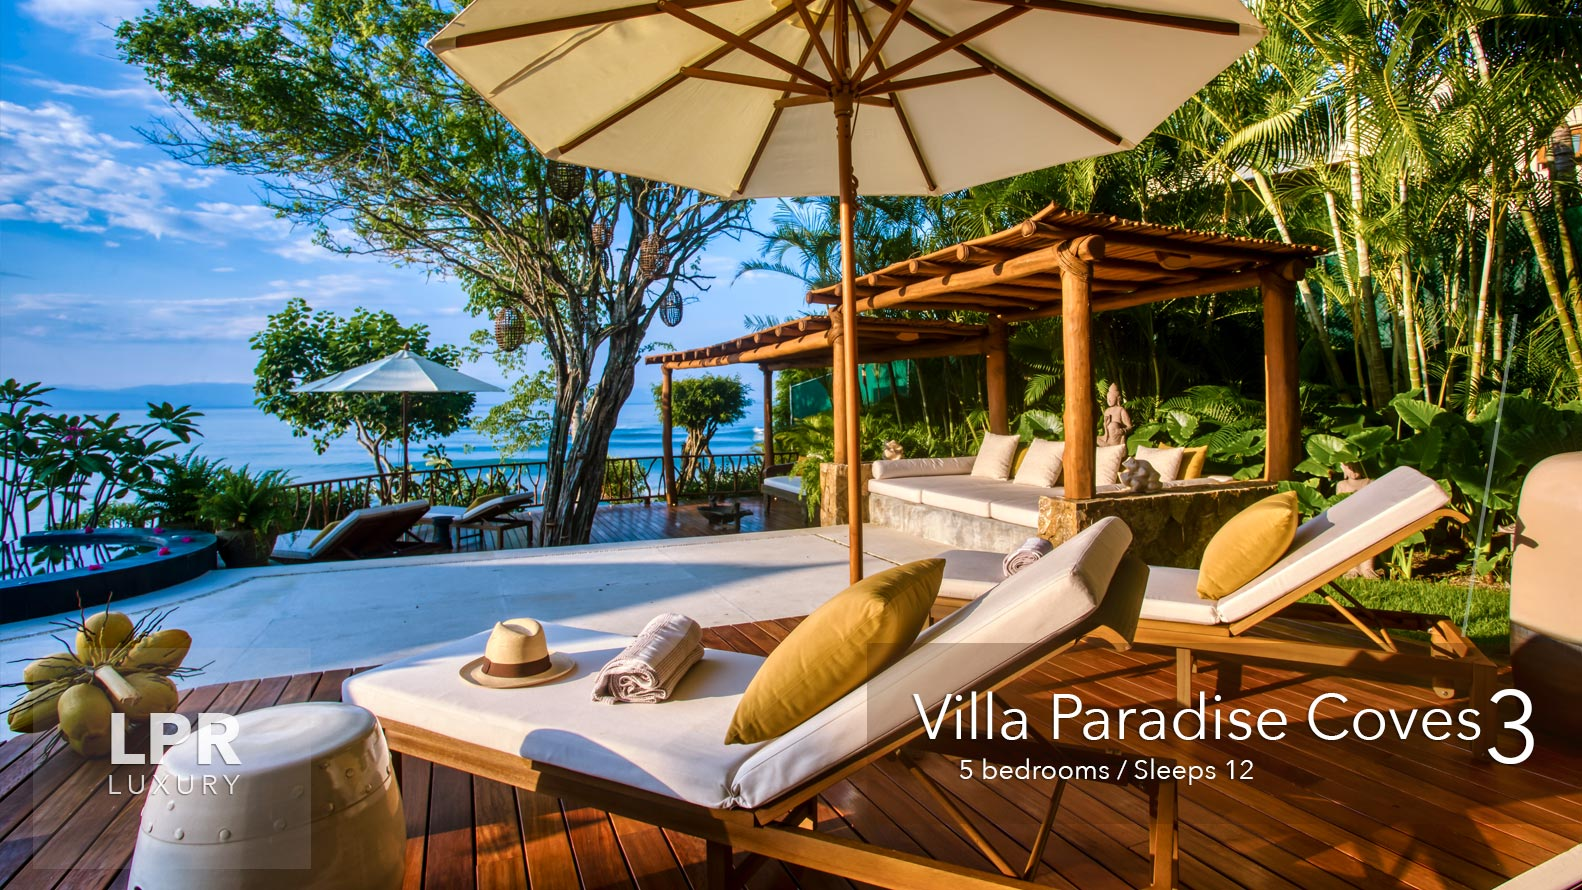 Villa Paradise Coves 3 - Luxury Punta de Mita Vacation Rental Villa - Riviera Nayarit, Mexico